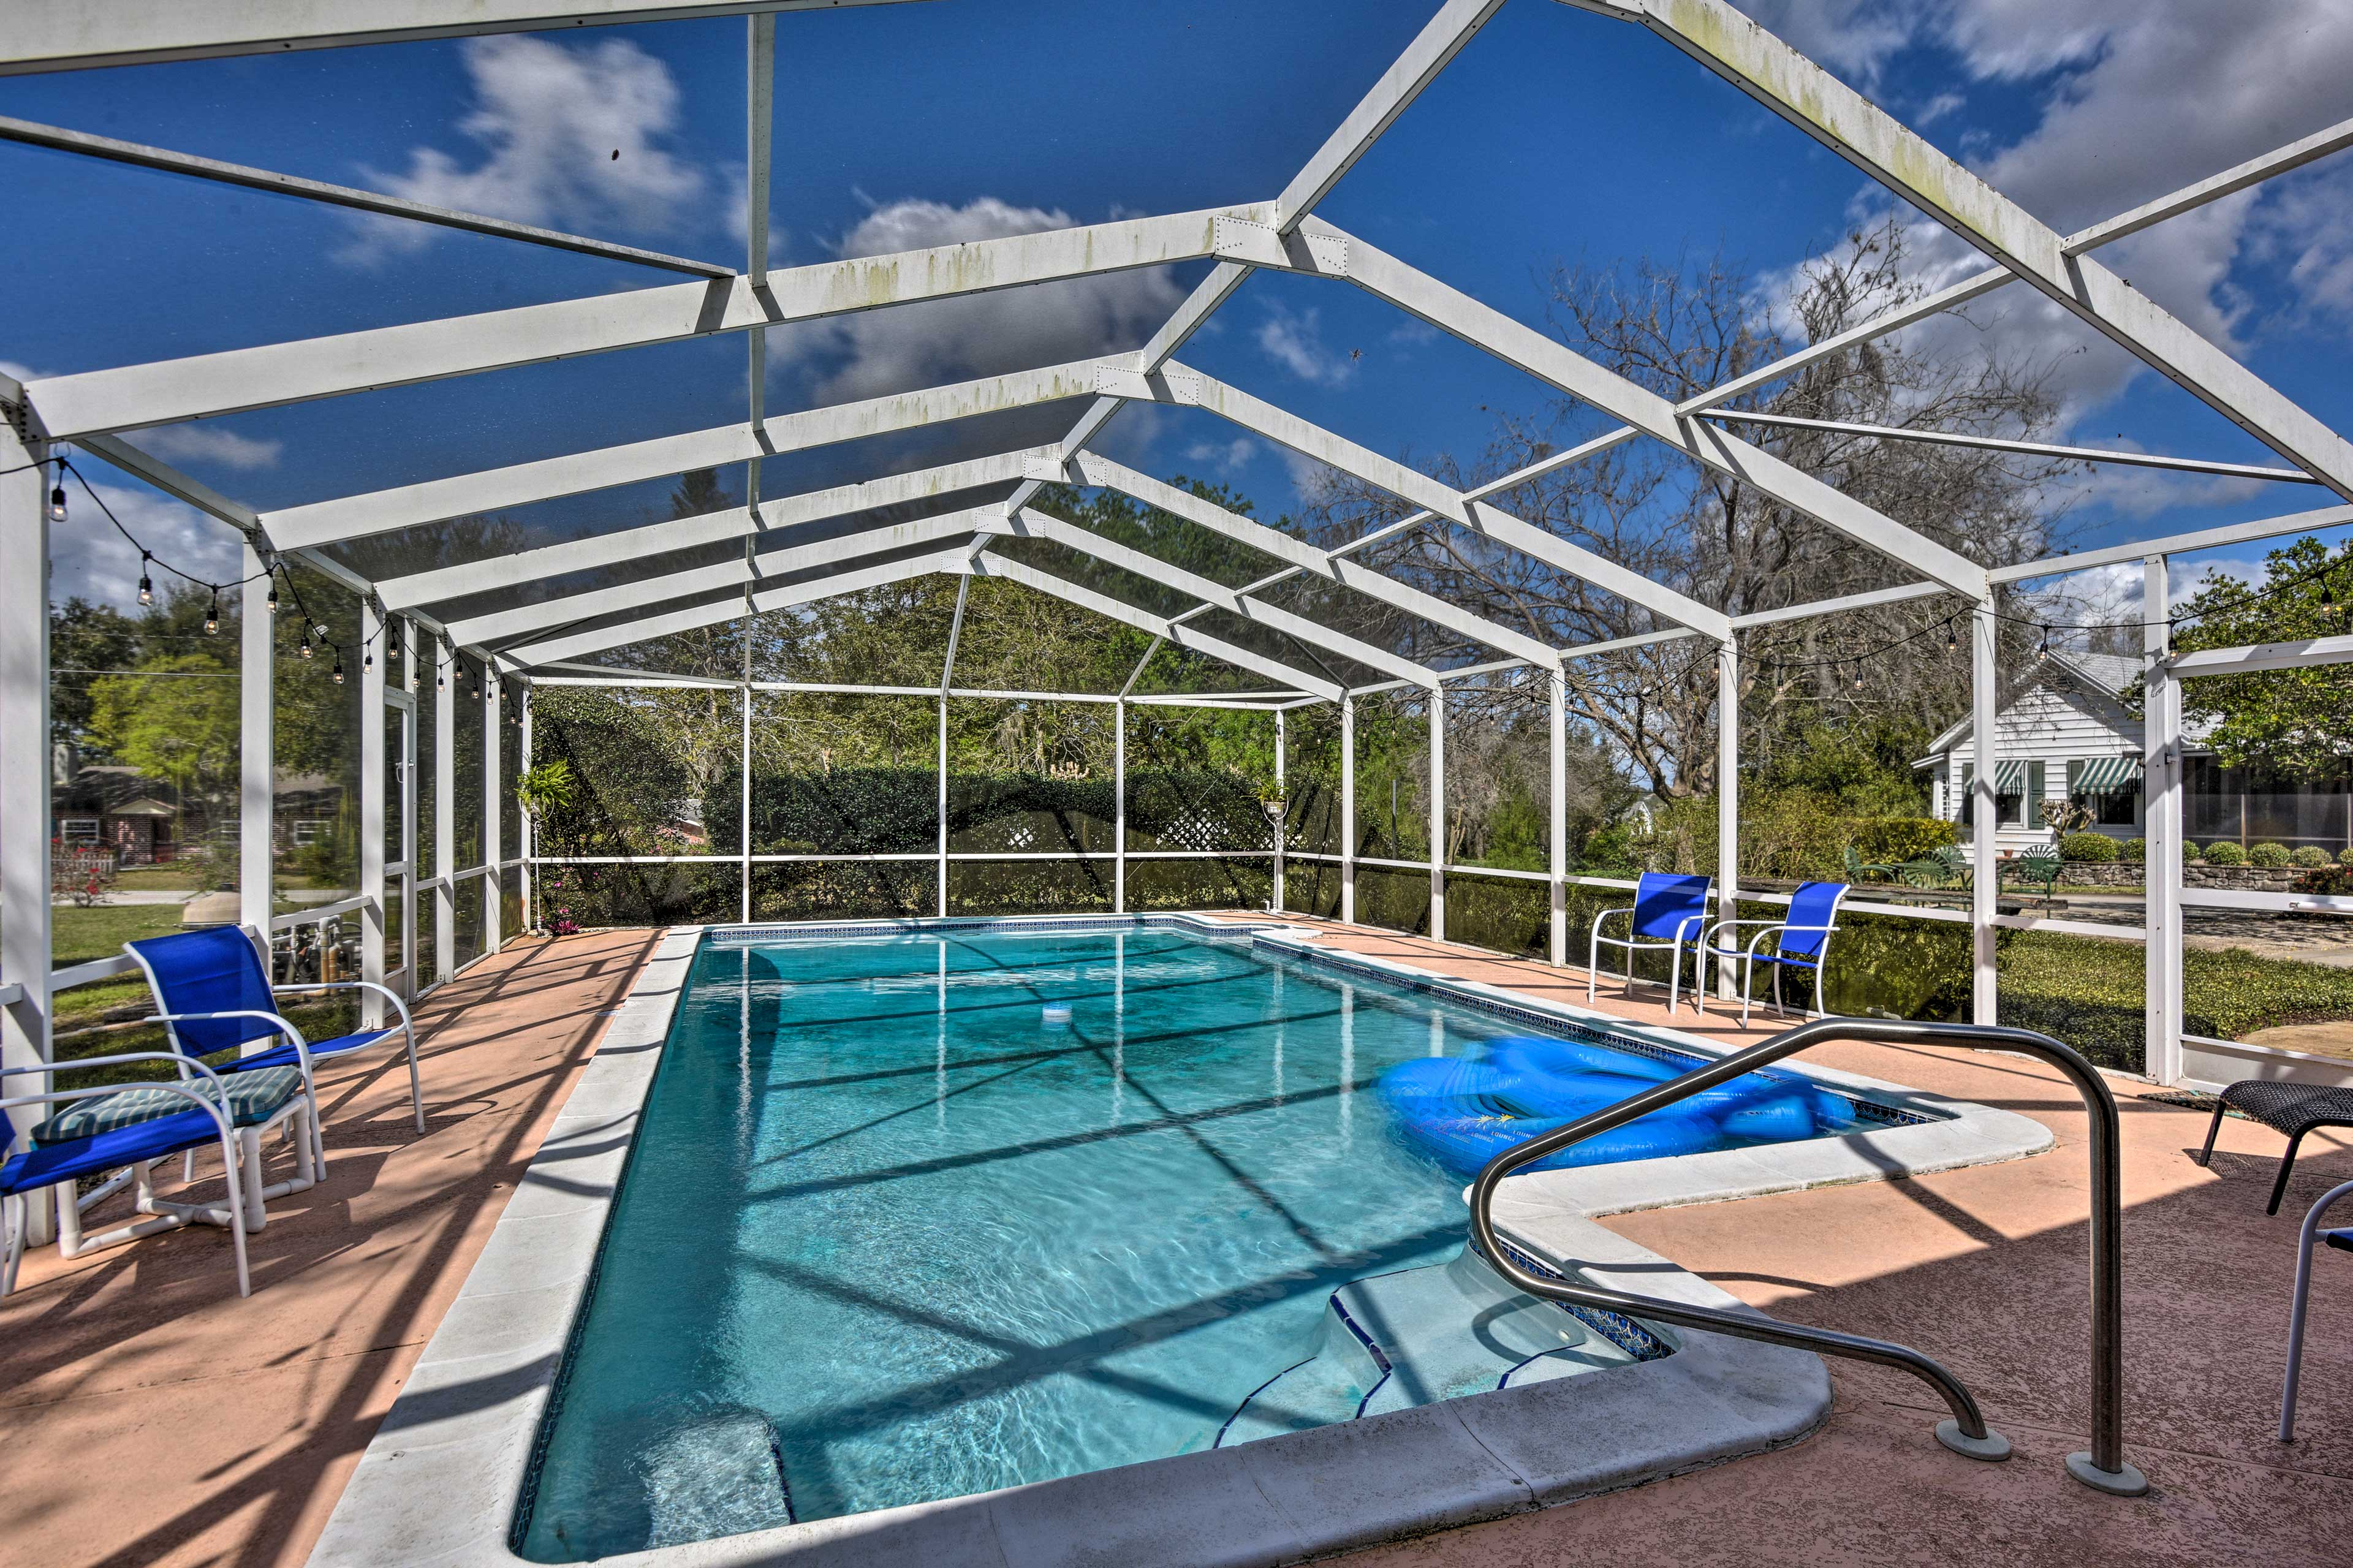 Take a dip in the private pool!